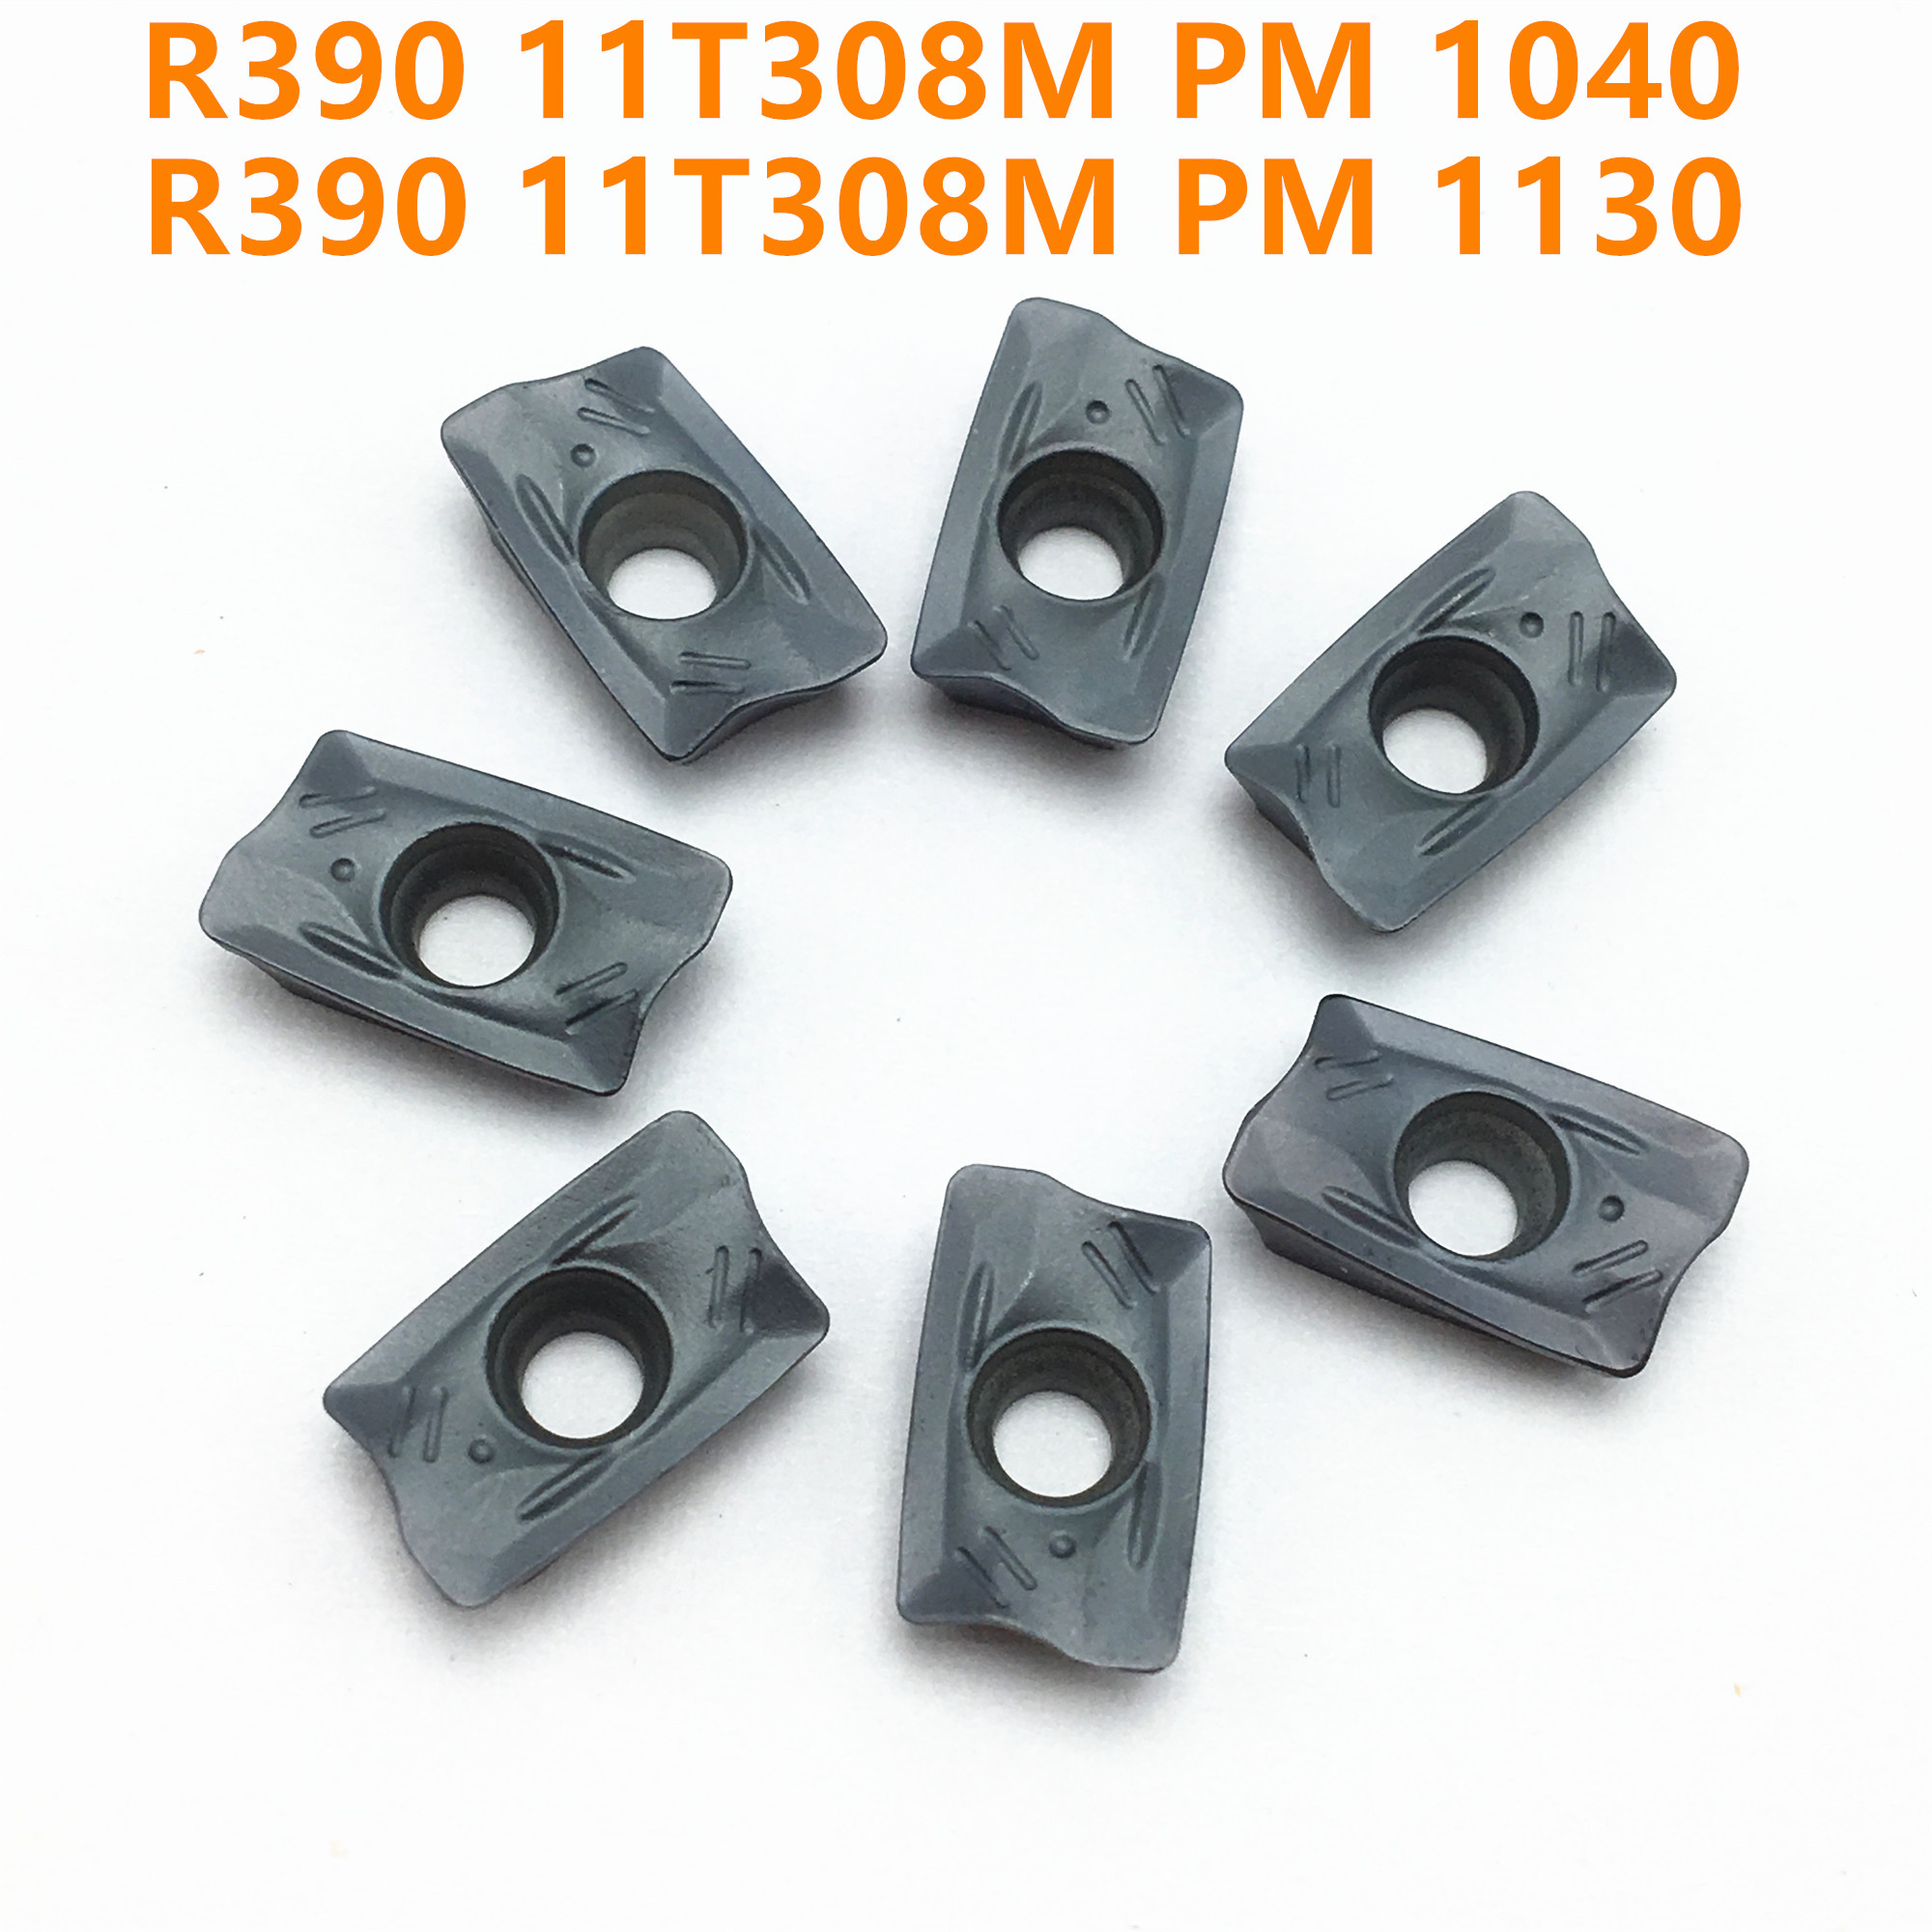 Carbide R390 11T304M 11T308M PM 1010/1025/1030/1130/4240 Carbide Blade Metal Turning Tool CNC Milling Machine Turning Tool R390